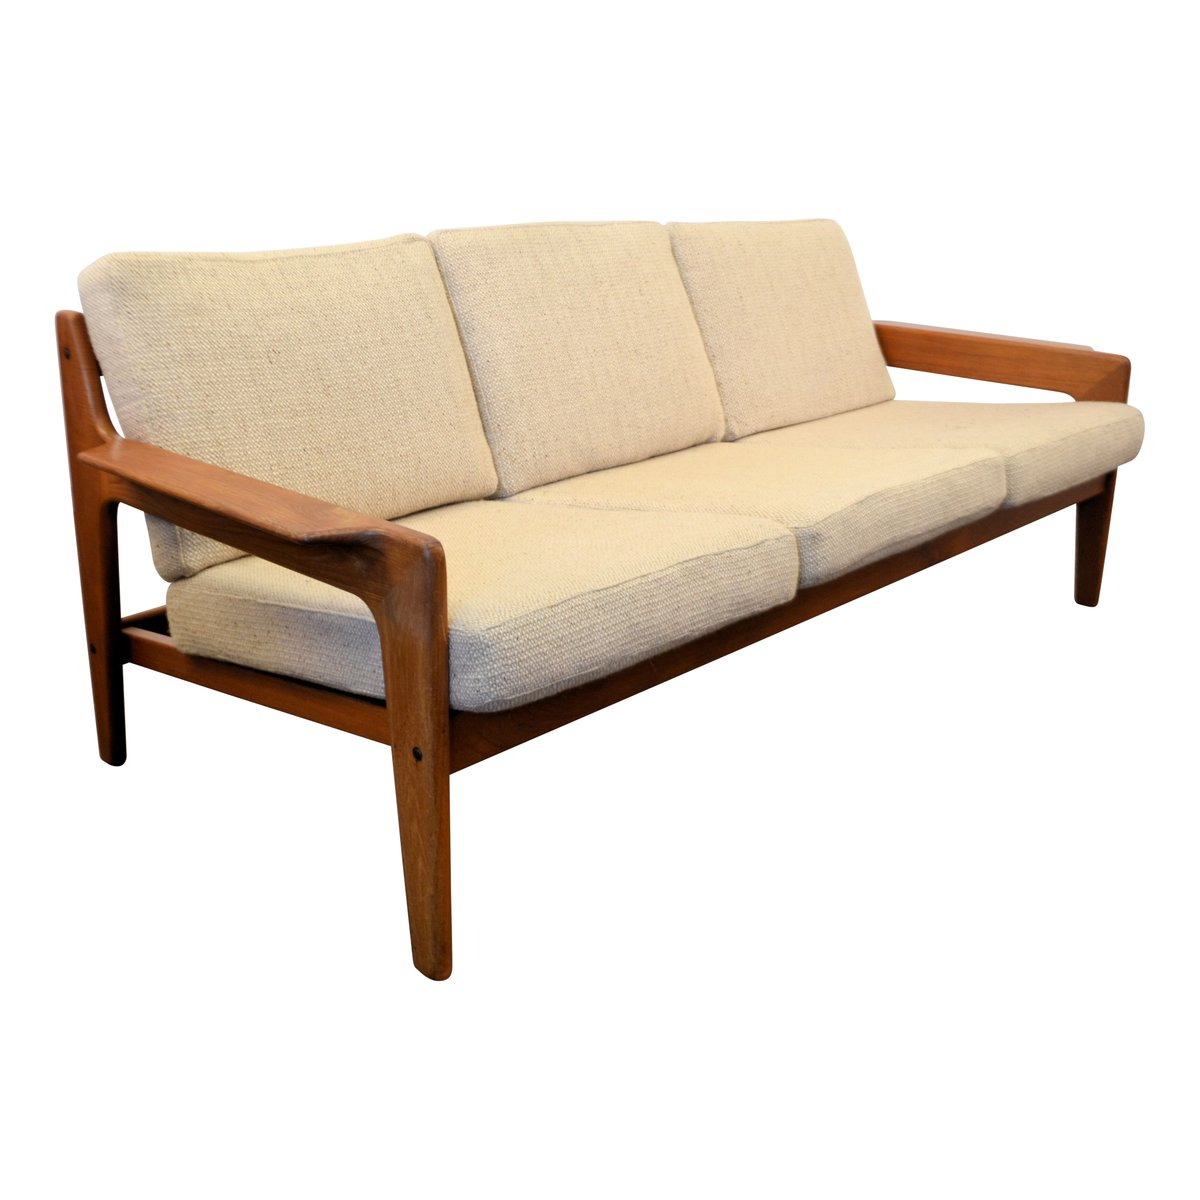 vintage danish teak frame sofa by arne wahl iversen for komfort for sale at pamono. Black Bedroom Furniture Sets. Home Design Ideas